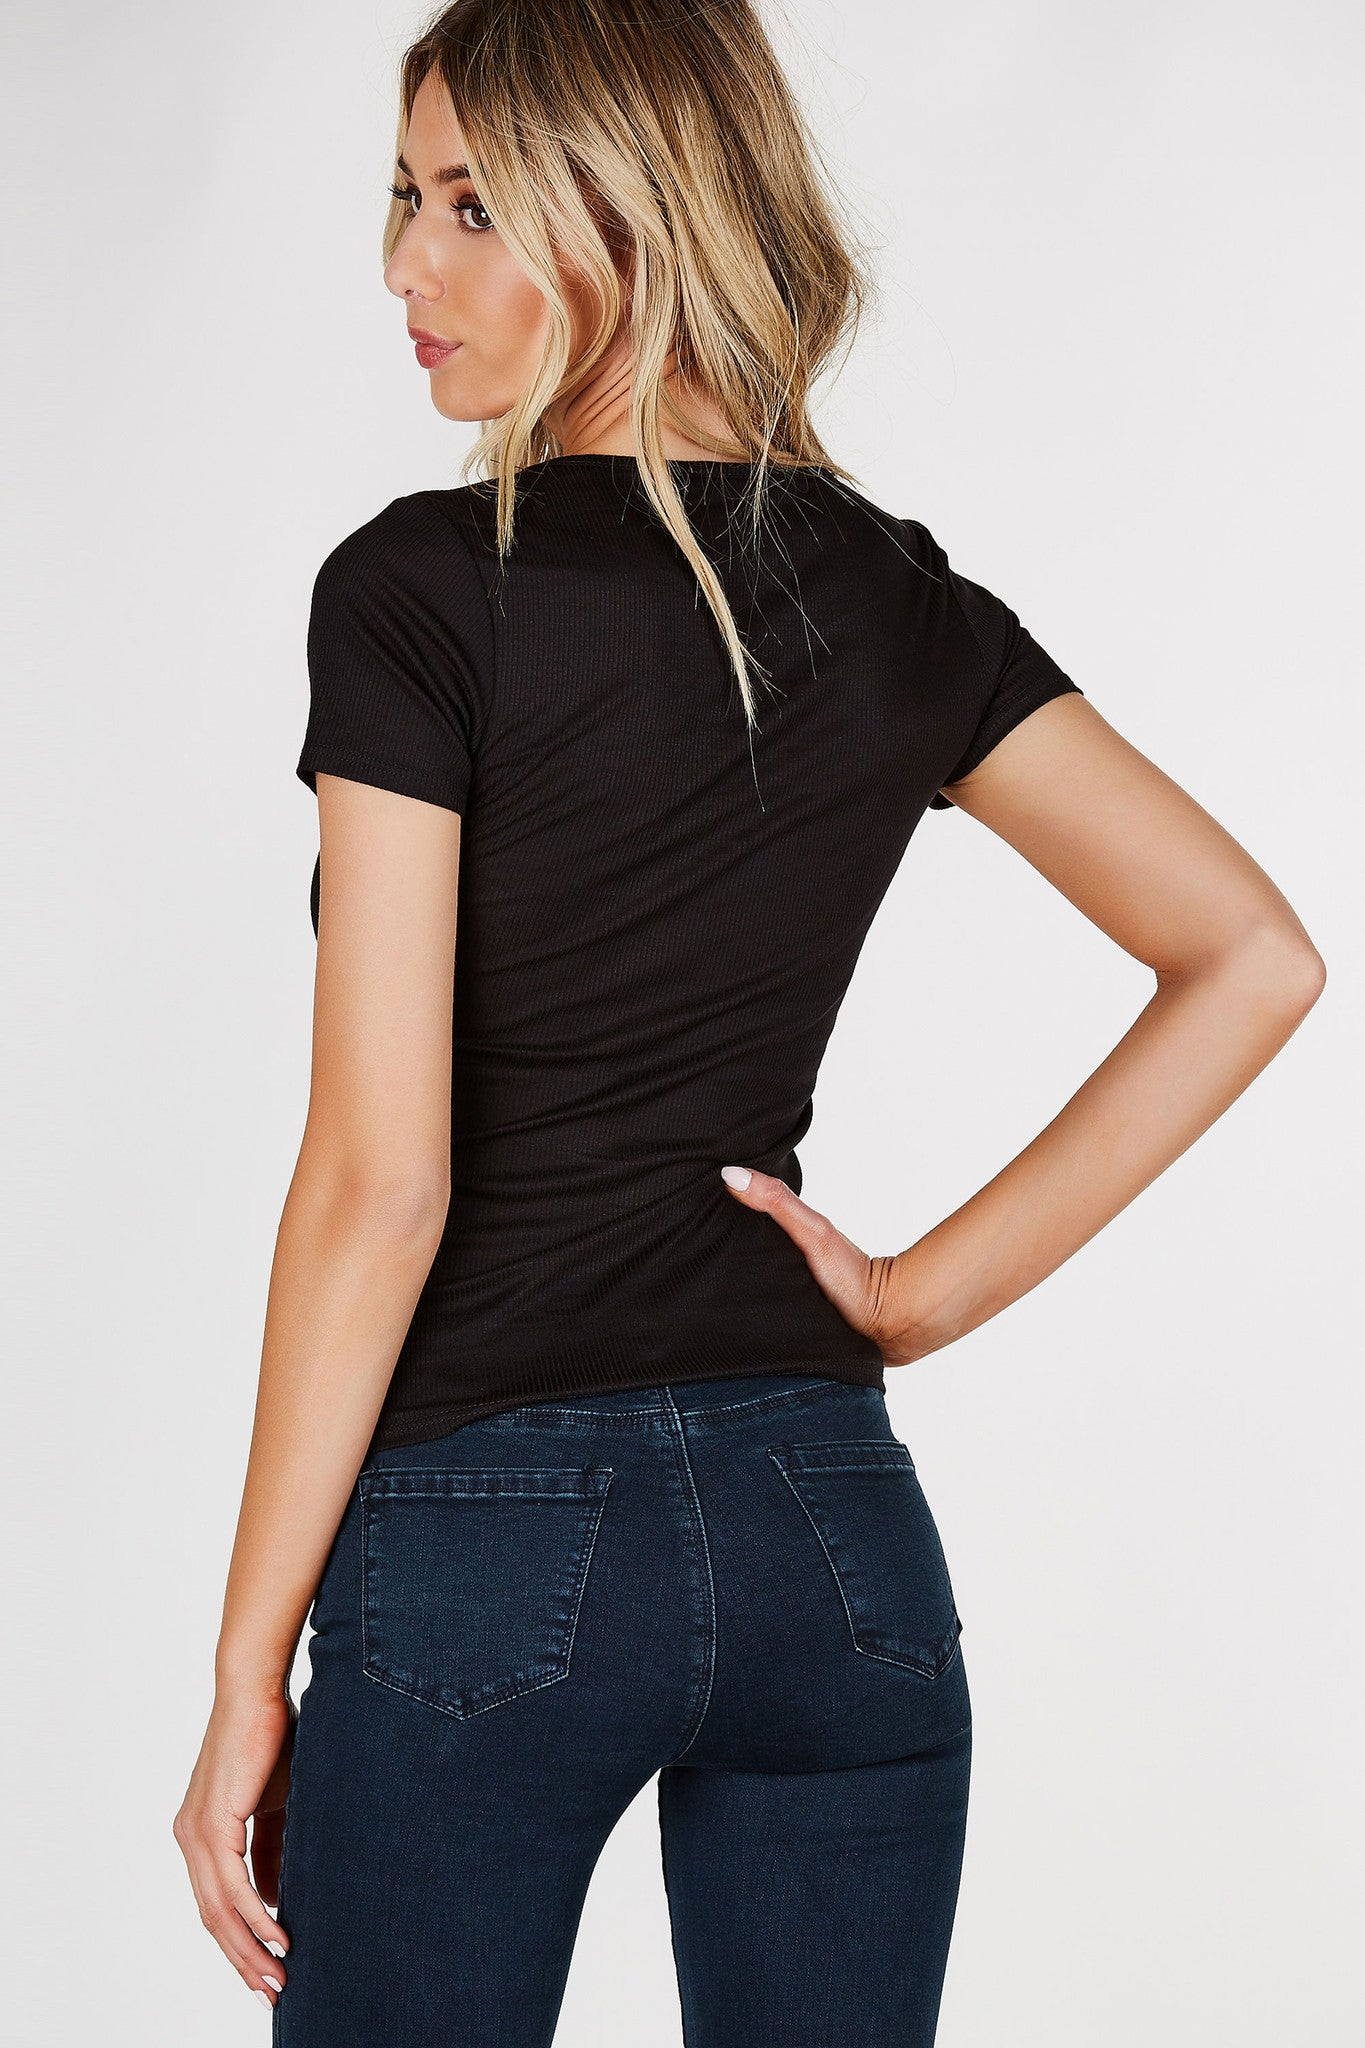 Deep V-neck short sleeve top with lace up detailing in front. Ribbed throughout with straight hem all around.